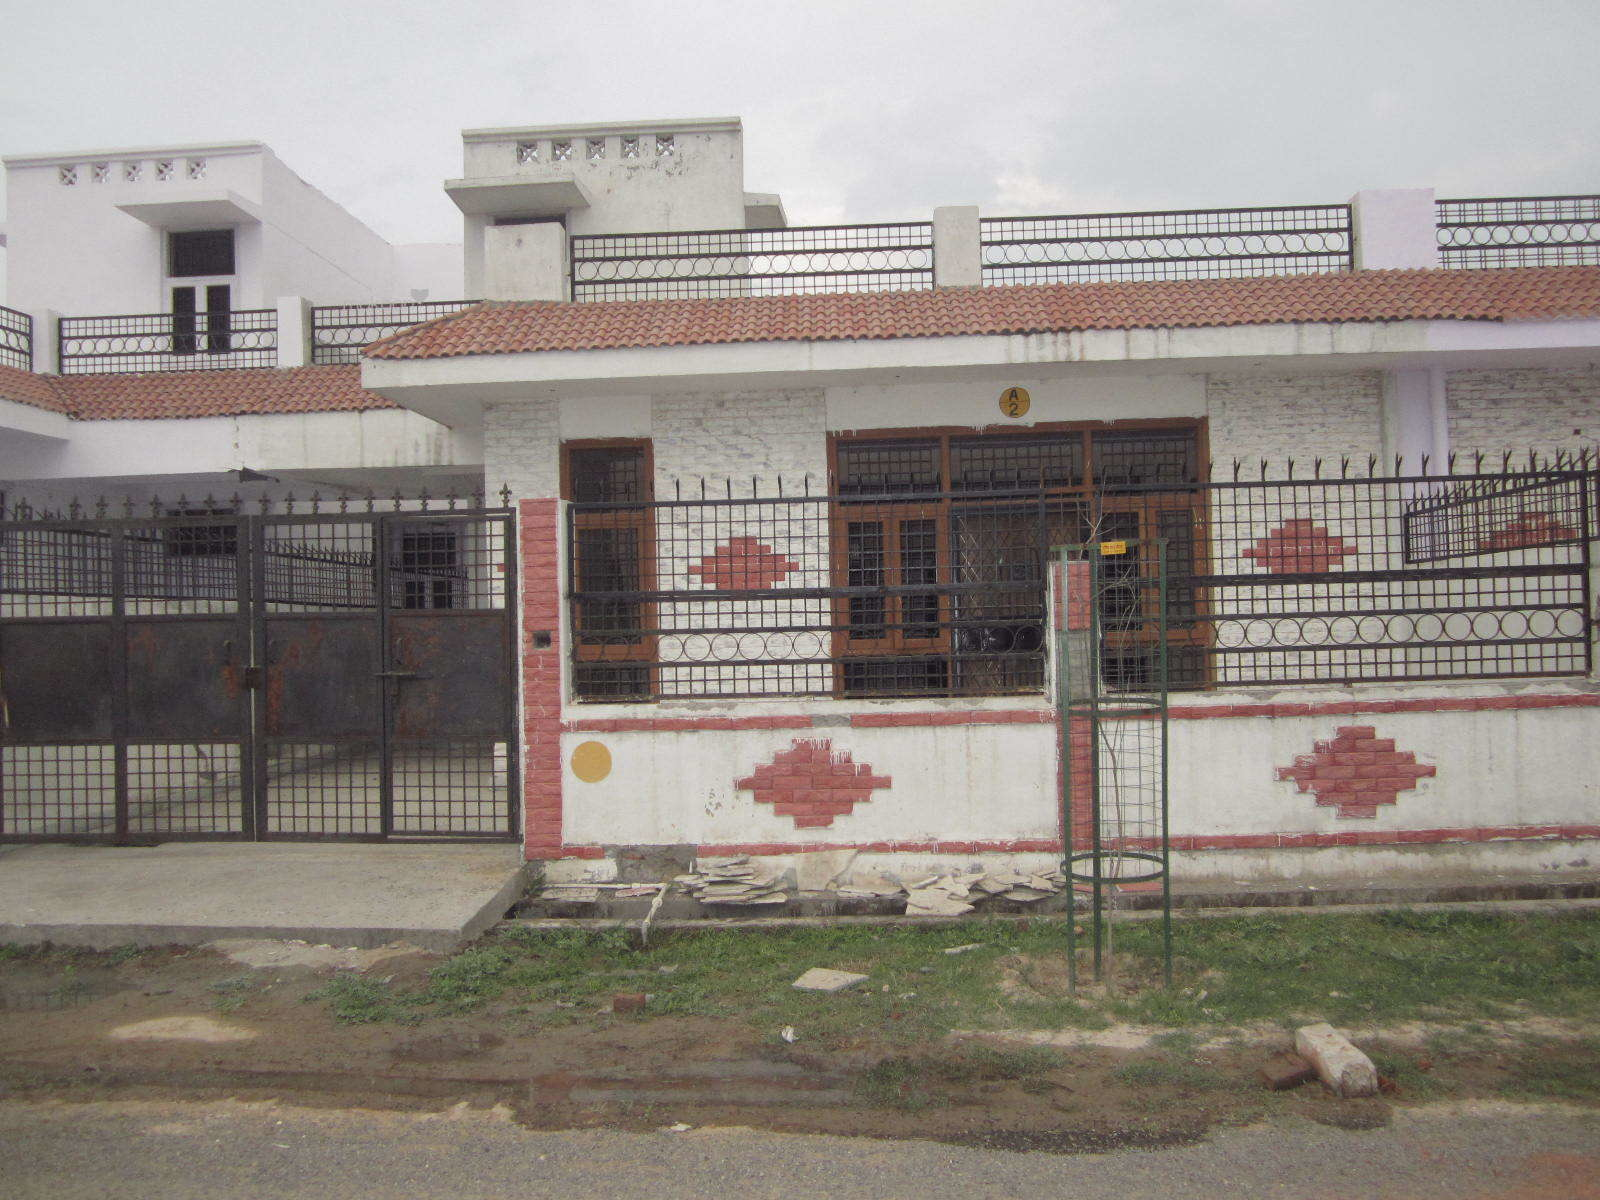 2152 sq ft 2BHK 2BHK+2T (2,152 sq ft) Property By ALFATECH REALTORS In omicron 1a, Omicron 1A